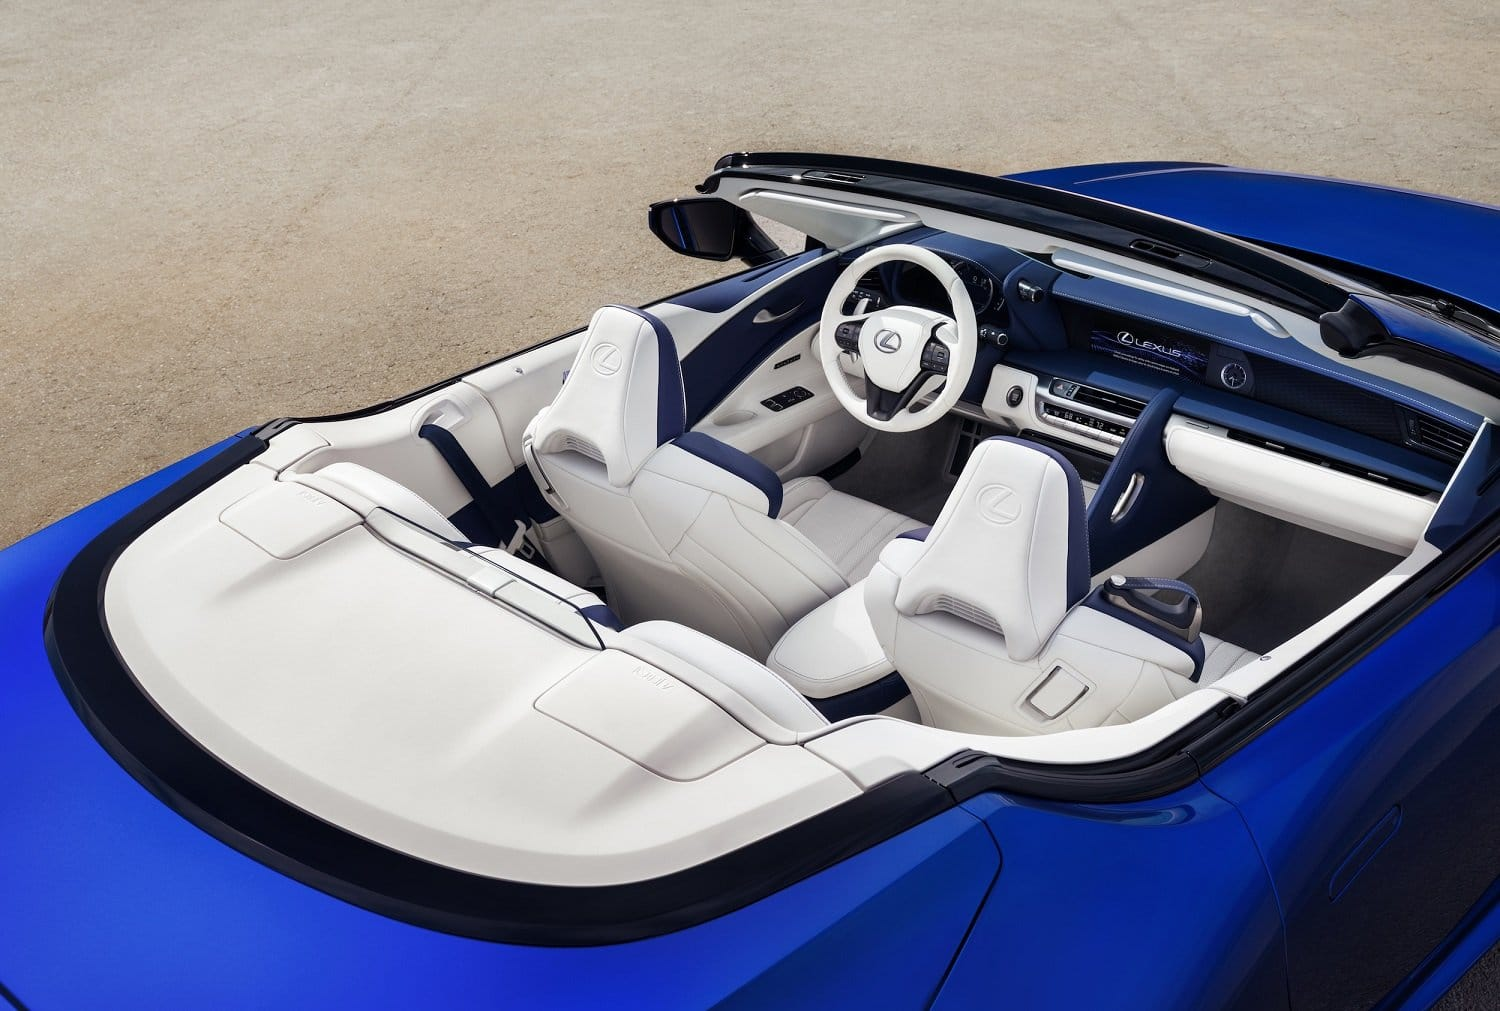 2020 Lexus LC 500 Convertible - Interior